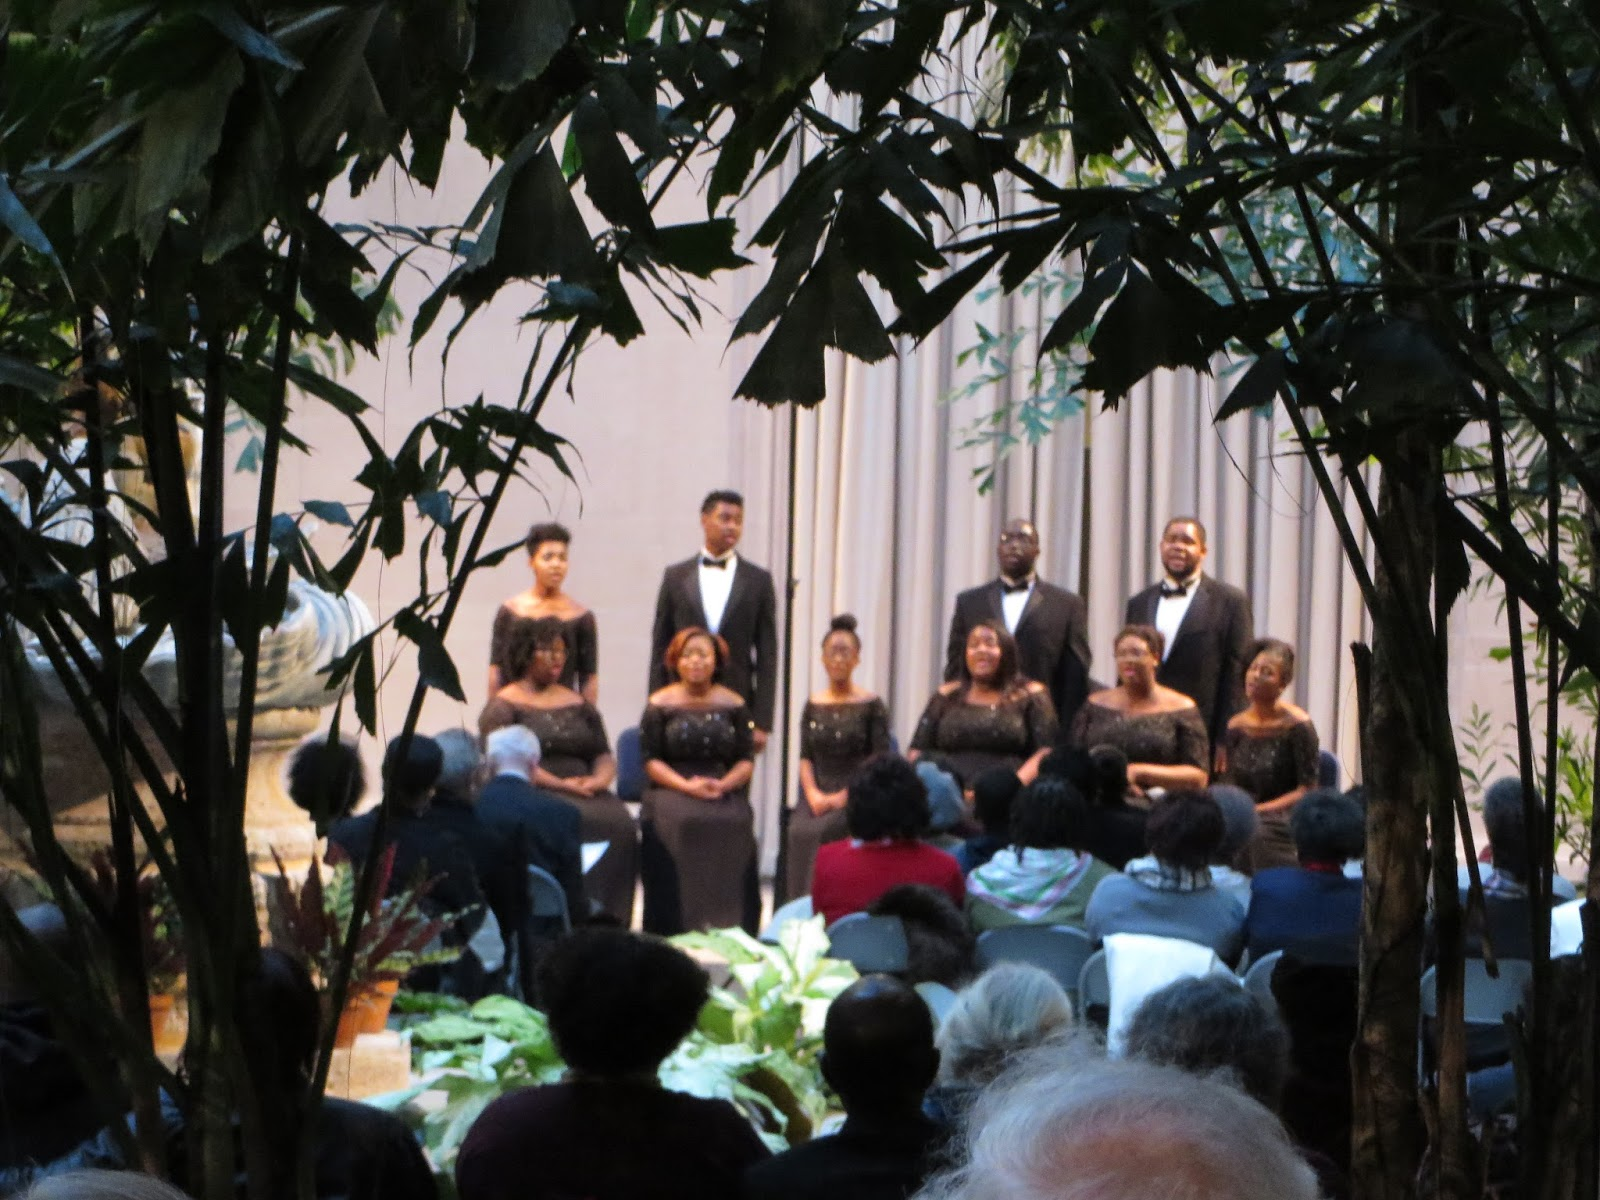 fisk jubilee singers rise shine. fisk jubilee singers at the national gallery of art rise shine